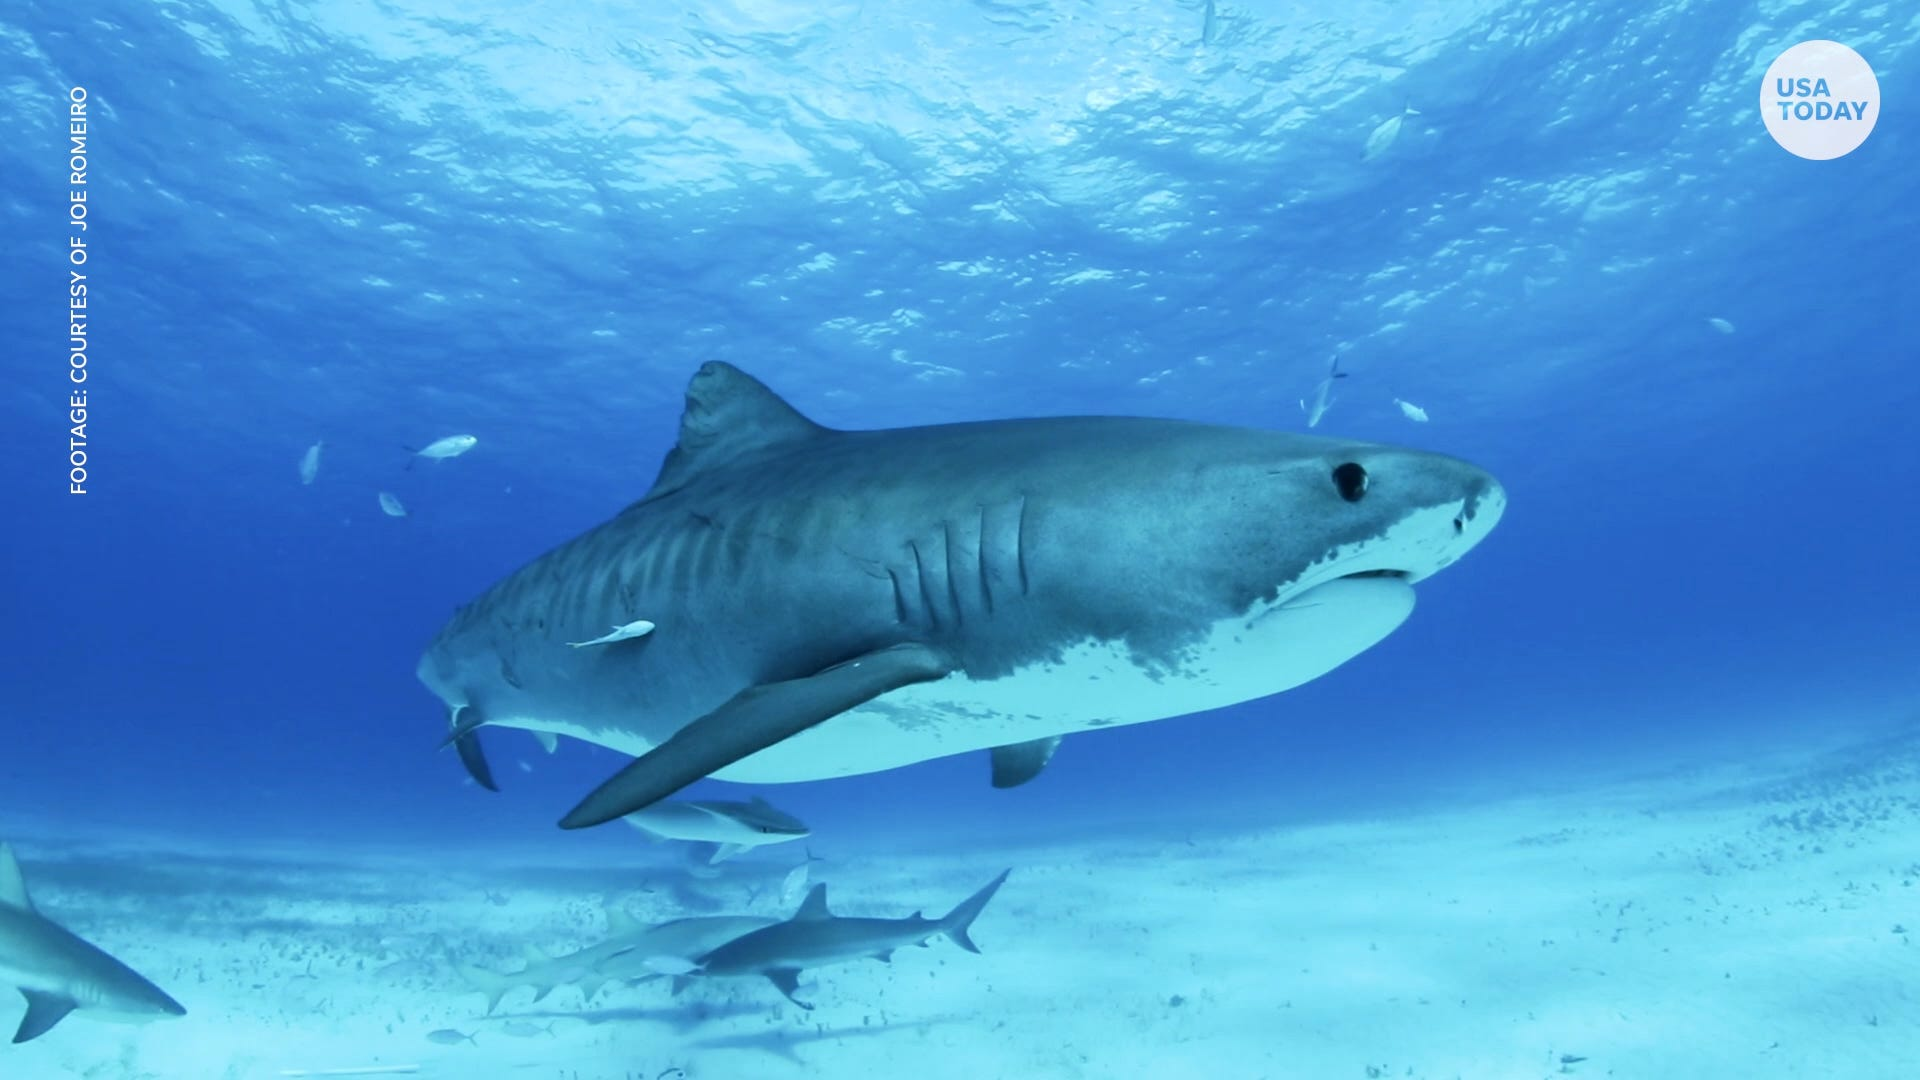 How to score quality time with tiger sharks in the Bahamas